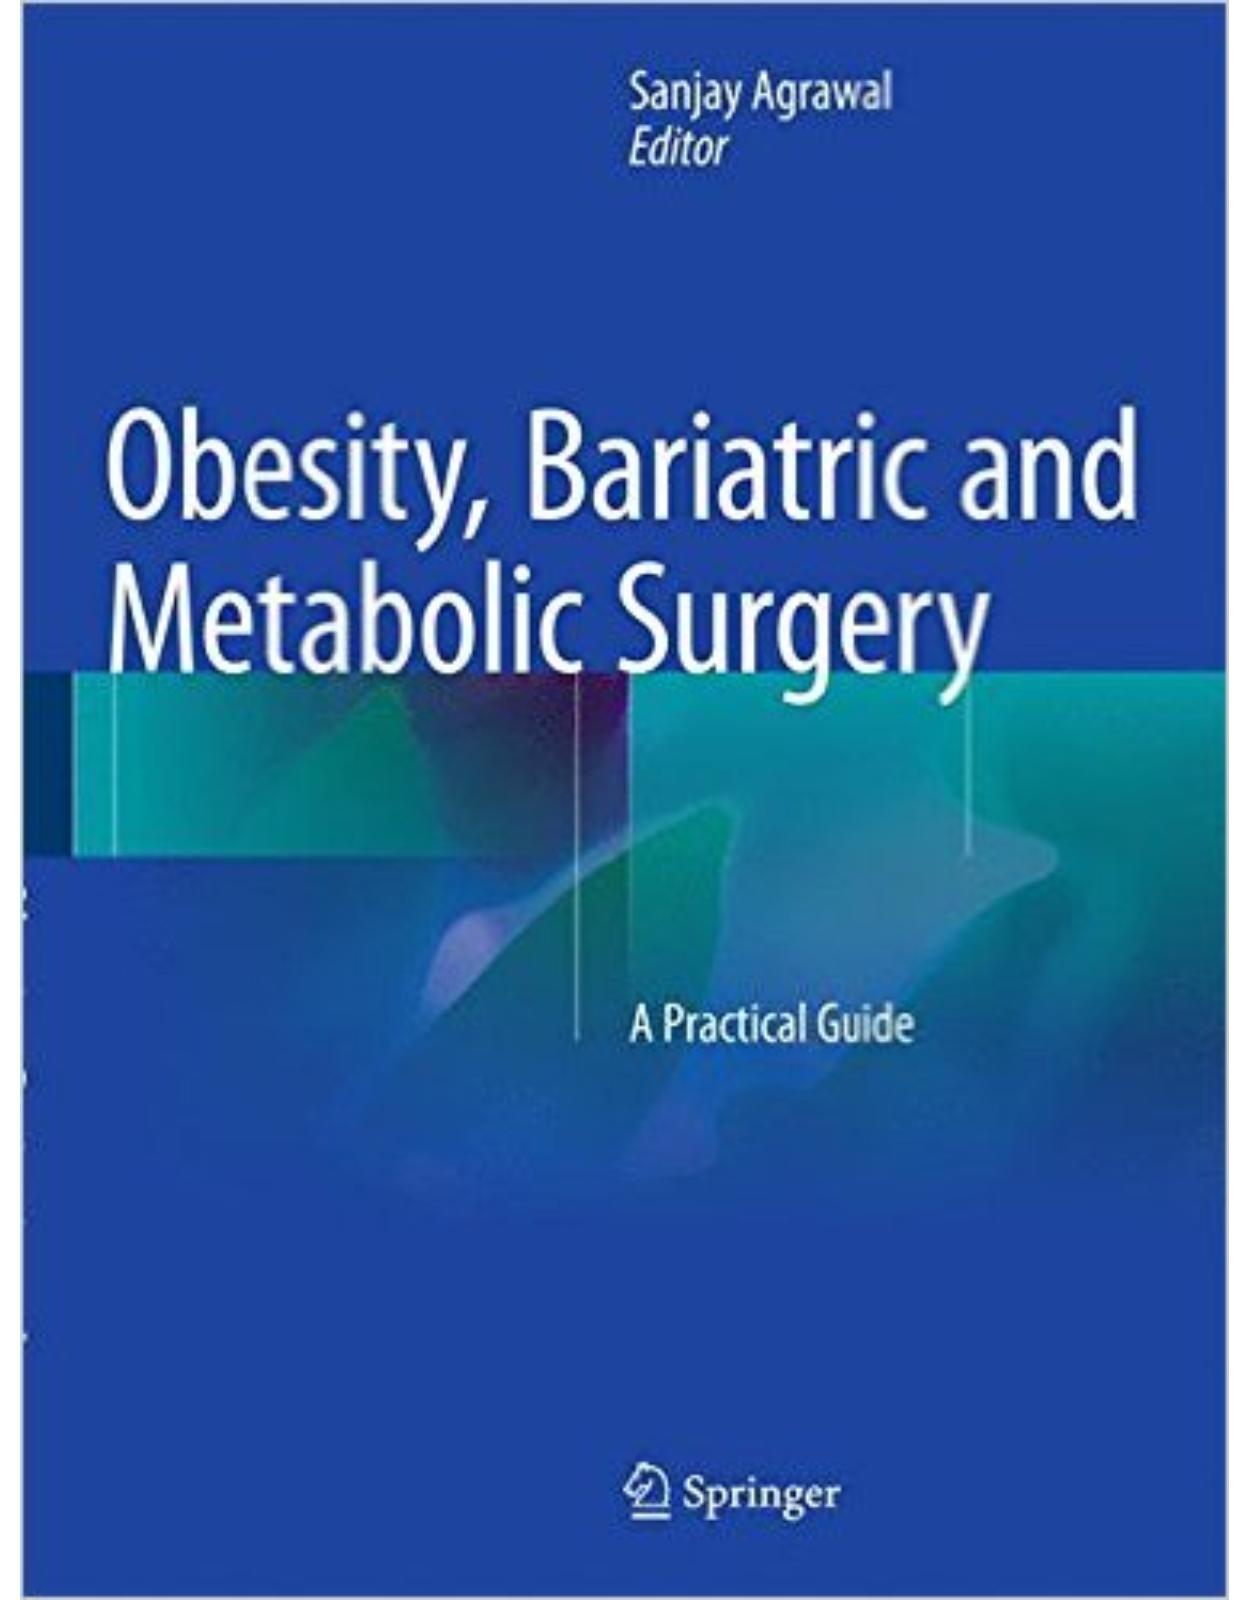 Obesity, Bariatric and Metabolic Surgery. A Practical Guide